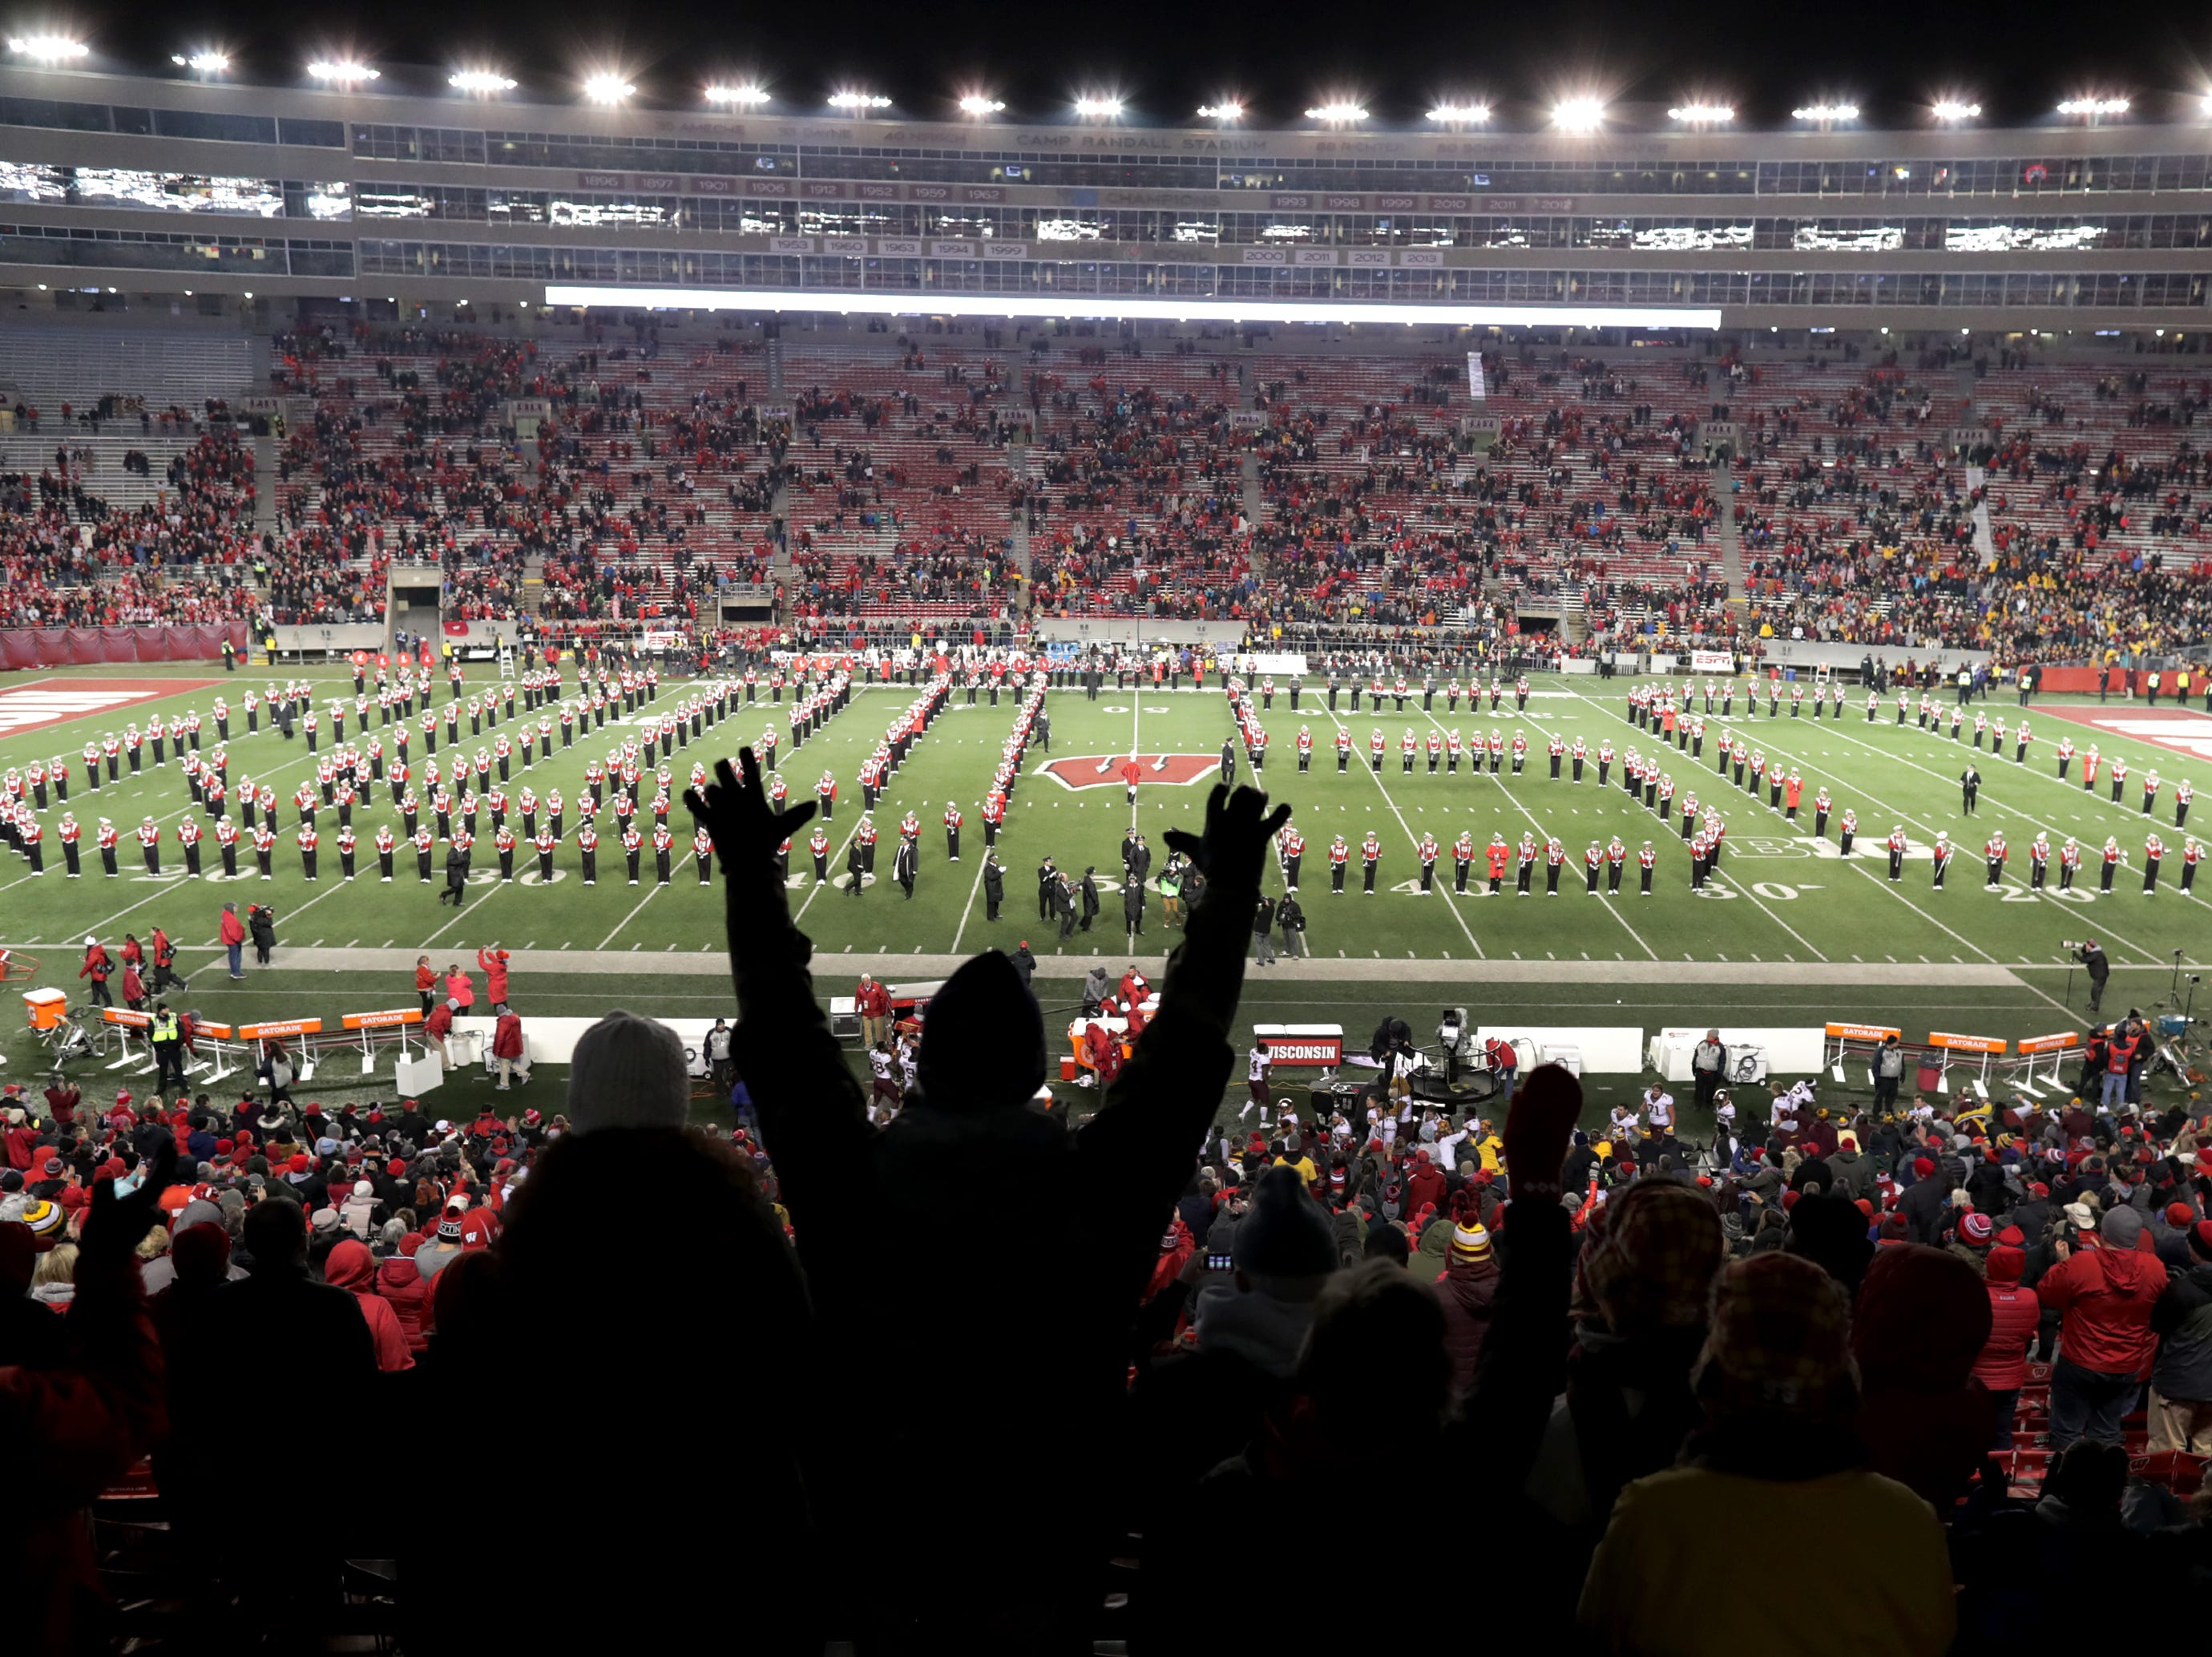 The University of Wisconsin Marching Band pays tribute to Director Michael Leckrone during the Fifth Quarter following the Wisconsin Badgers loss to the Minnesota Gophers on Saturday, November 24, 2018, at Camp Randall in Madison, Wis. Leckrone is retiring after fifty years as leader of the band.